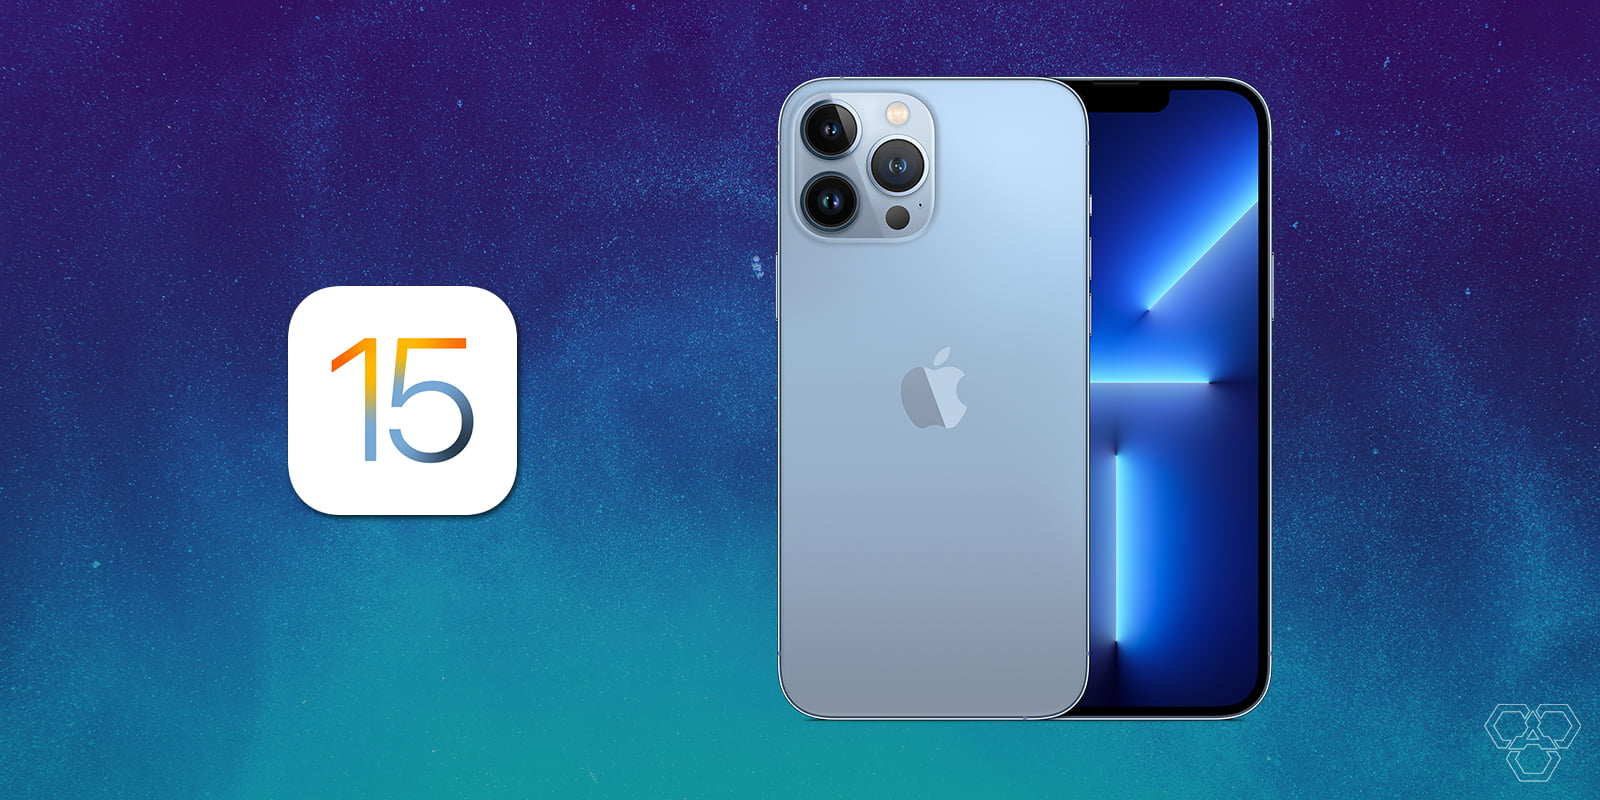 How to get iOS 15 now